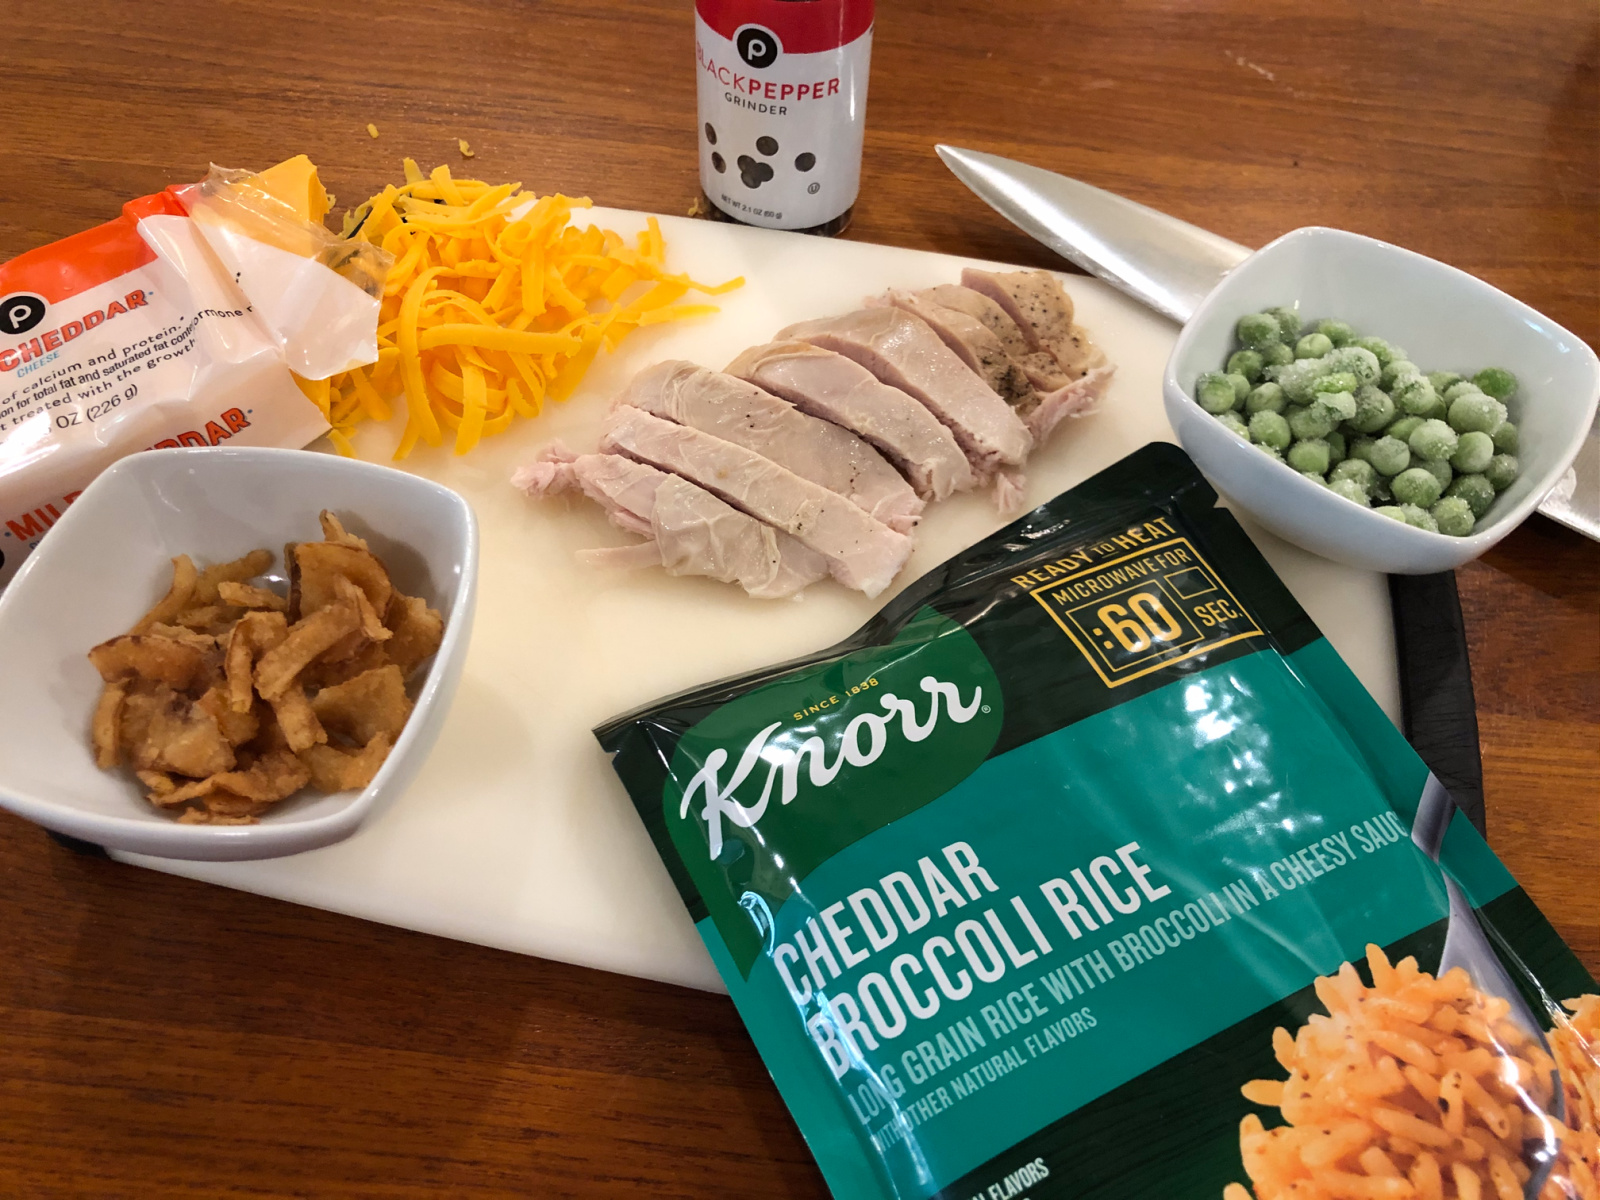 Thanksgiving Leftovers Rice Bowl - Clip Your Coupon And Save On Knorr Products At Publix on I Heart Publix